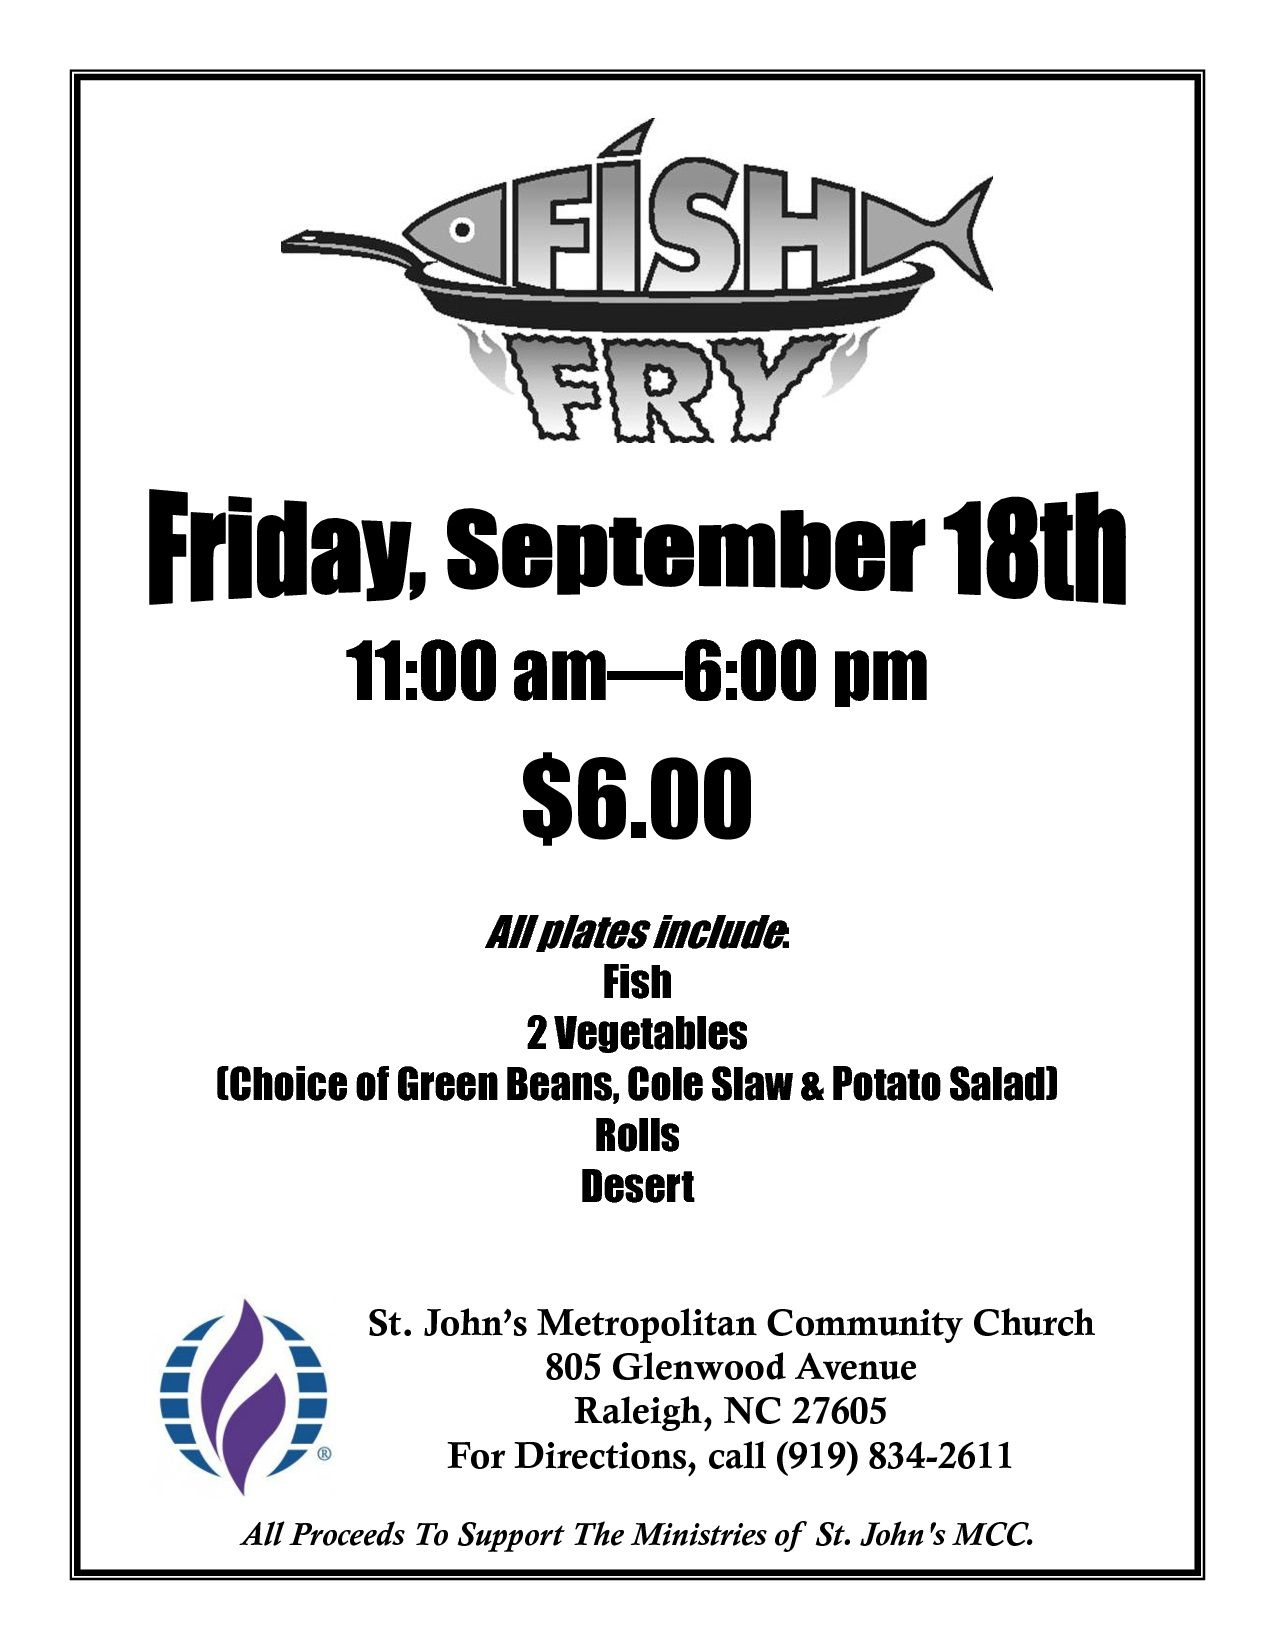 003 Awful Fish Fry Flyer Template Concept  Printable Free Powerpoint PsdFull